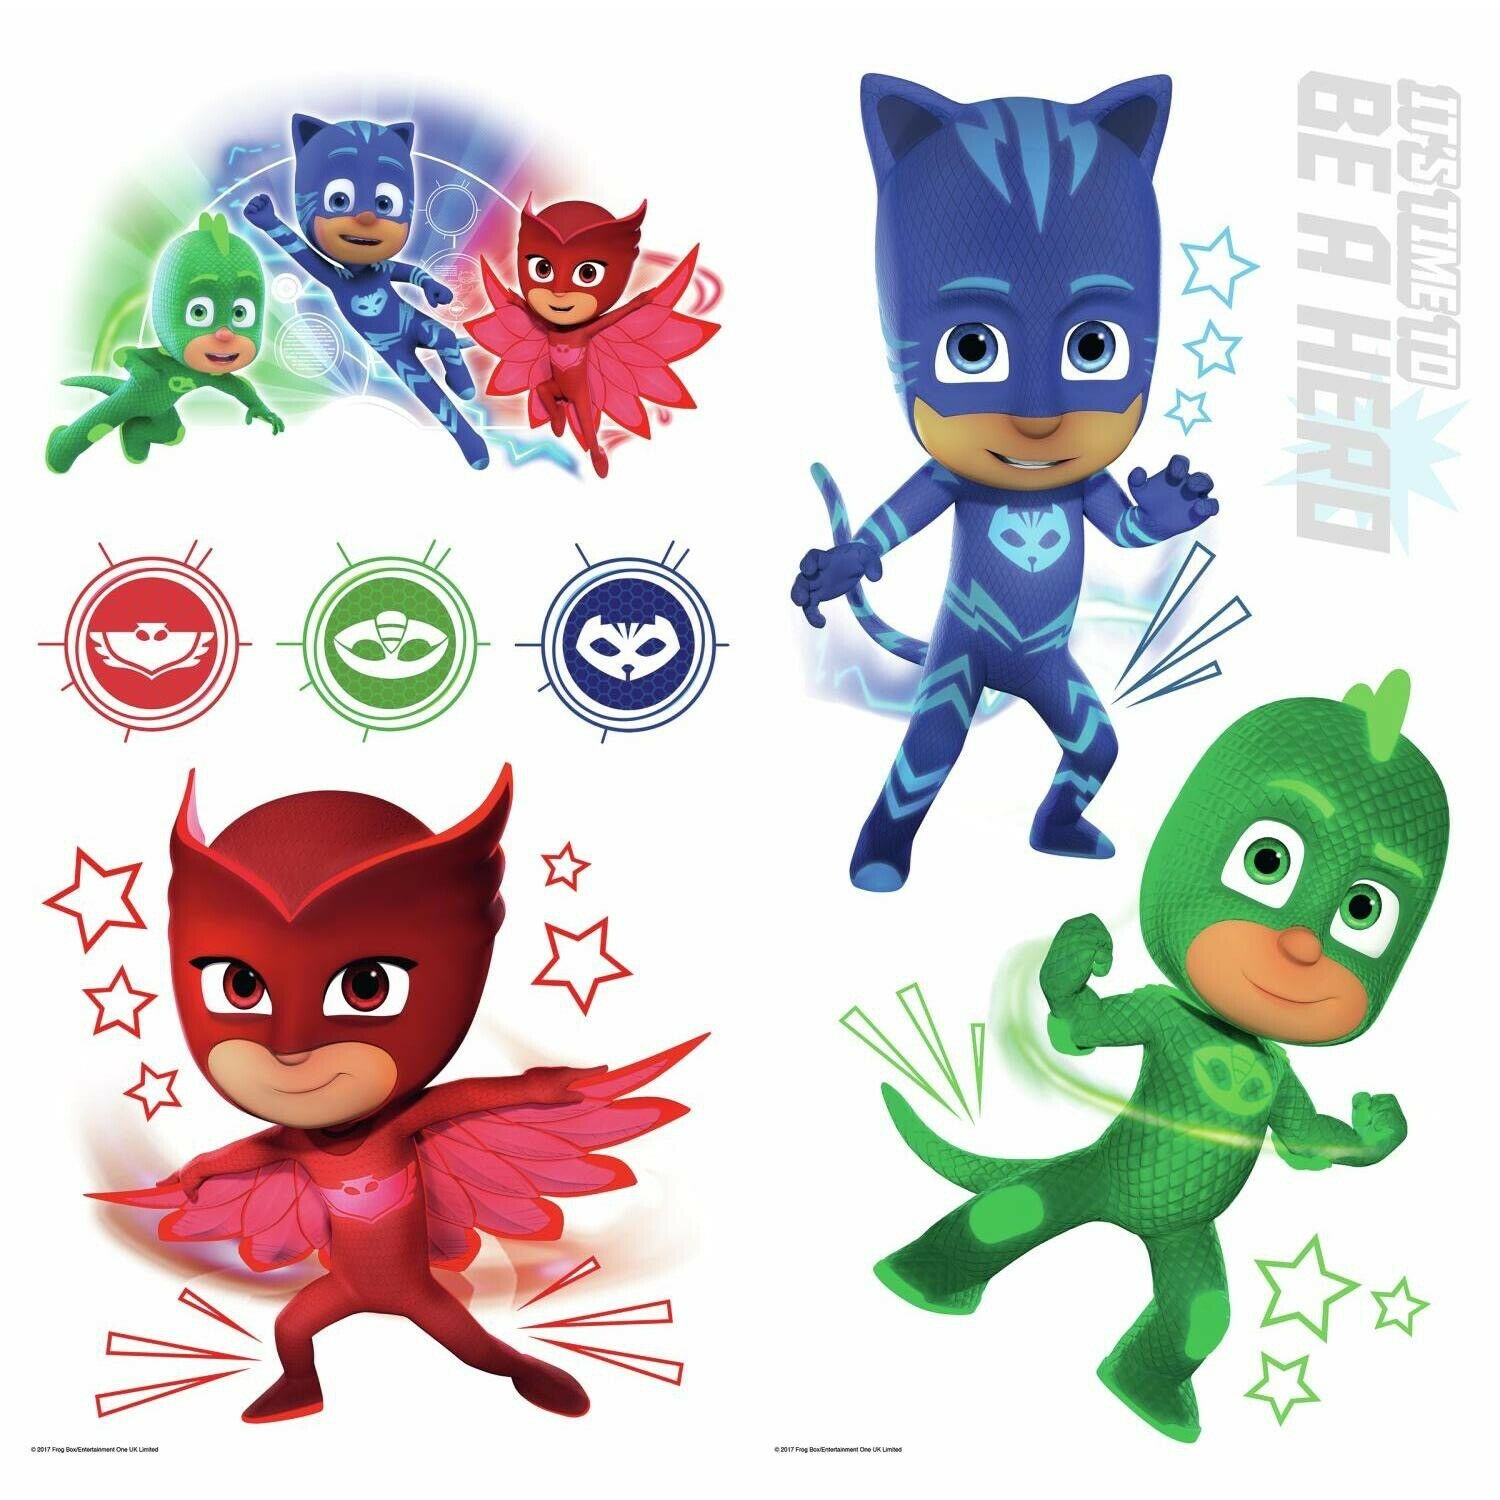 New Pj Masks Stickers Glow In Dark 8 Wall Decals Catboy Owlette Gekko Room Decor For Sale Online